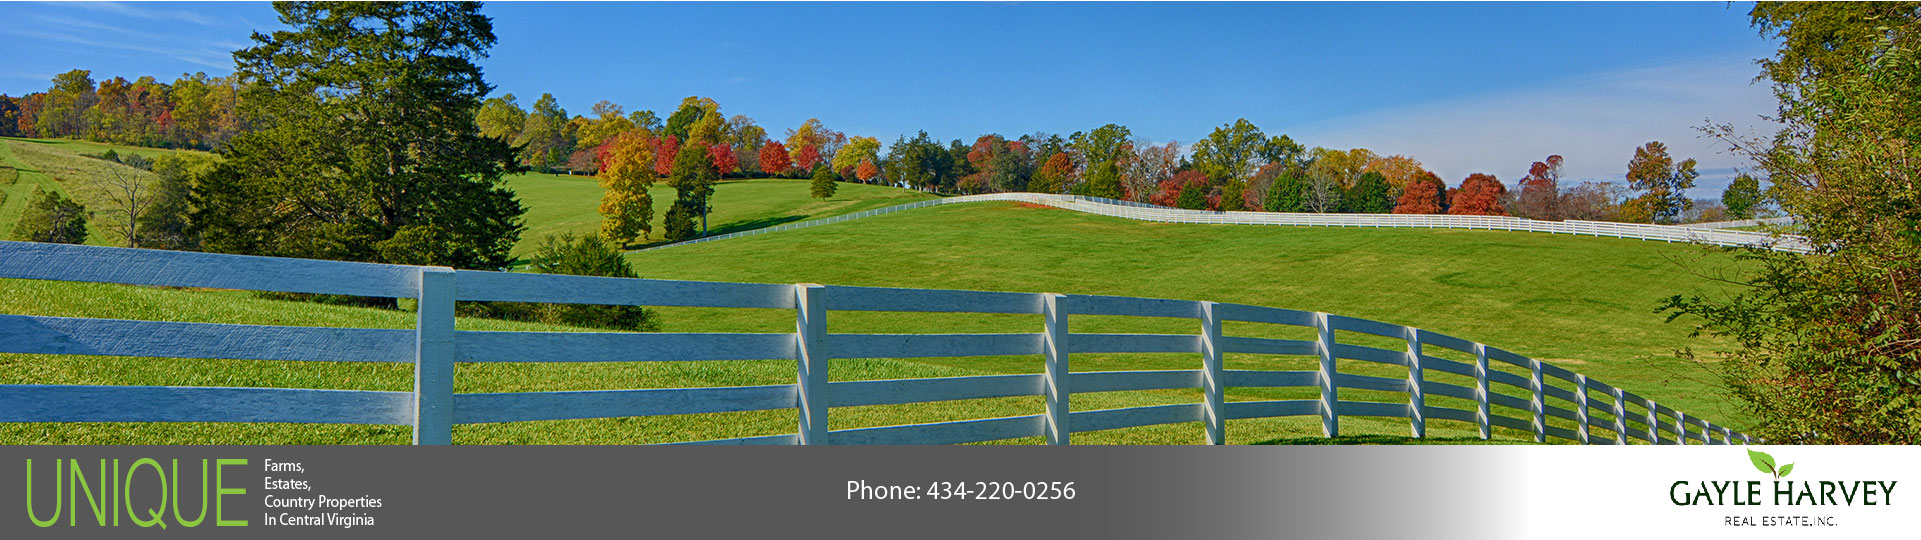 Orange County Virginia Farms for Sale